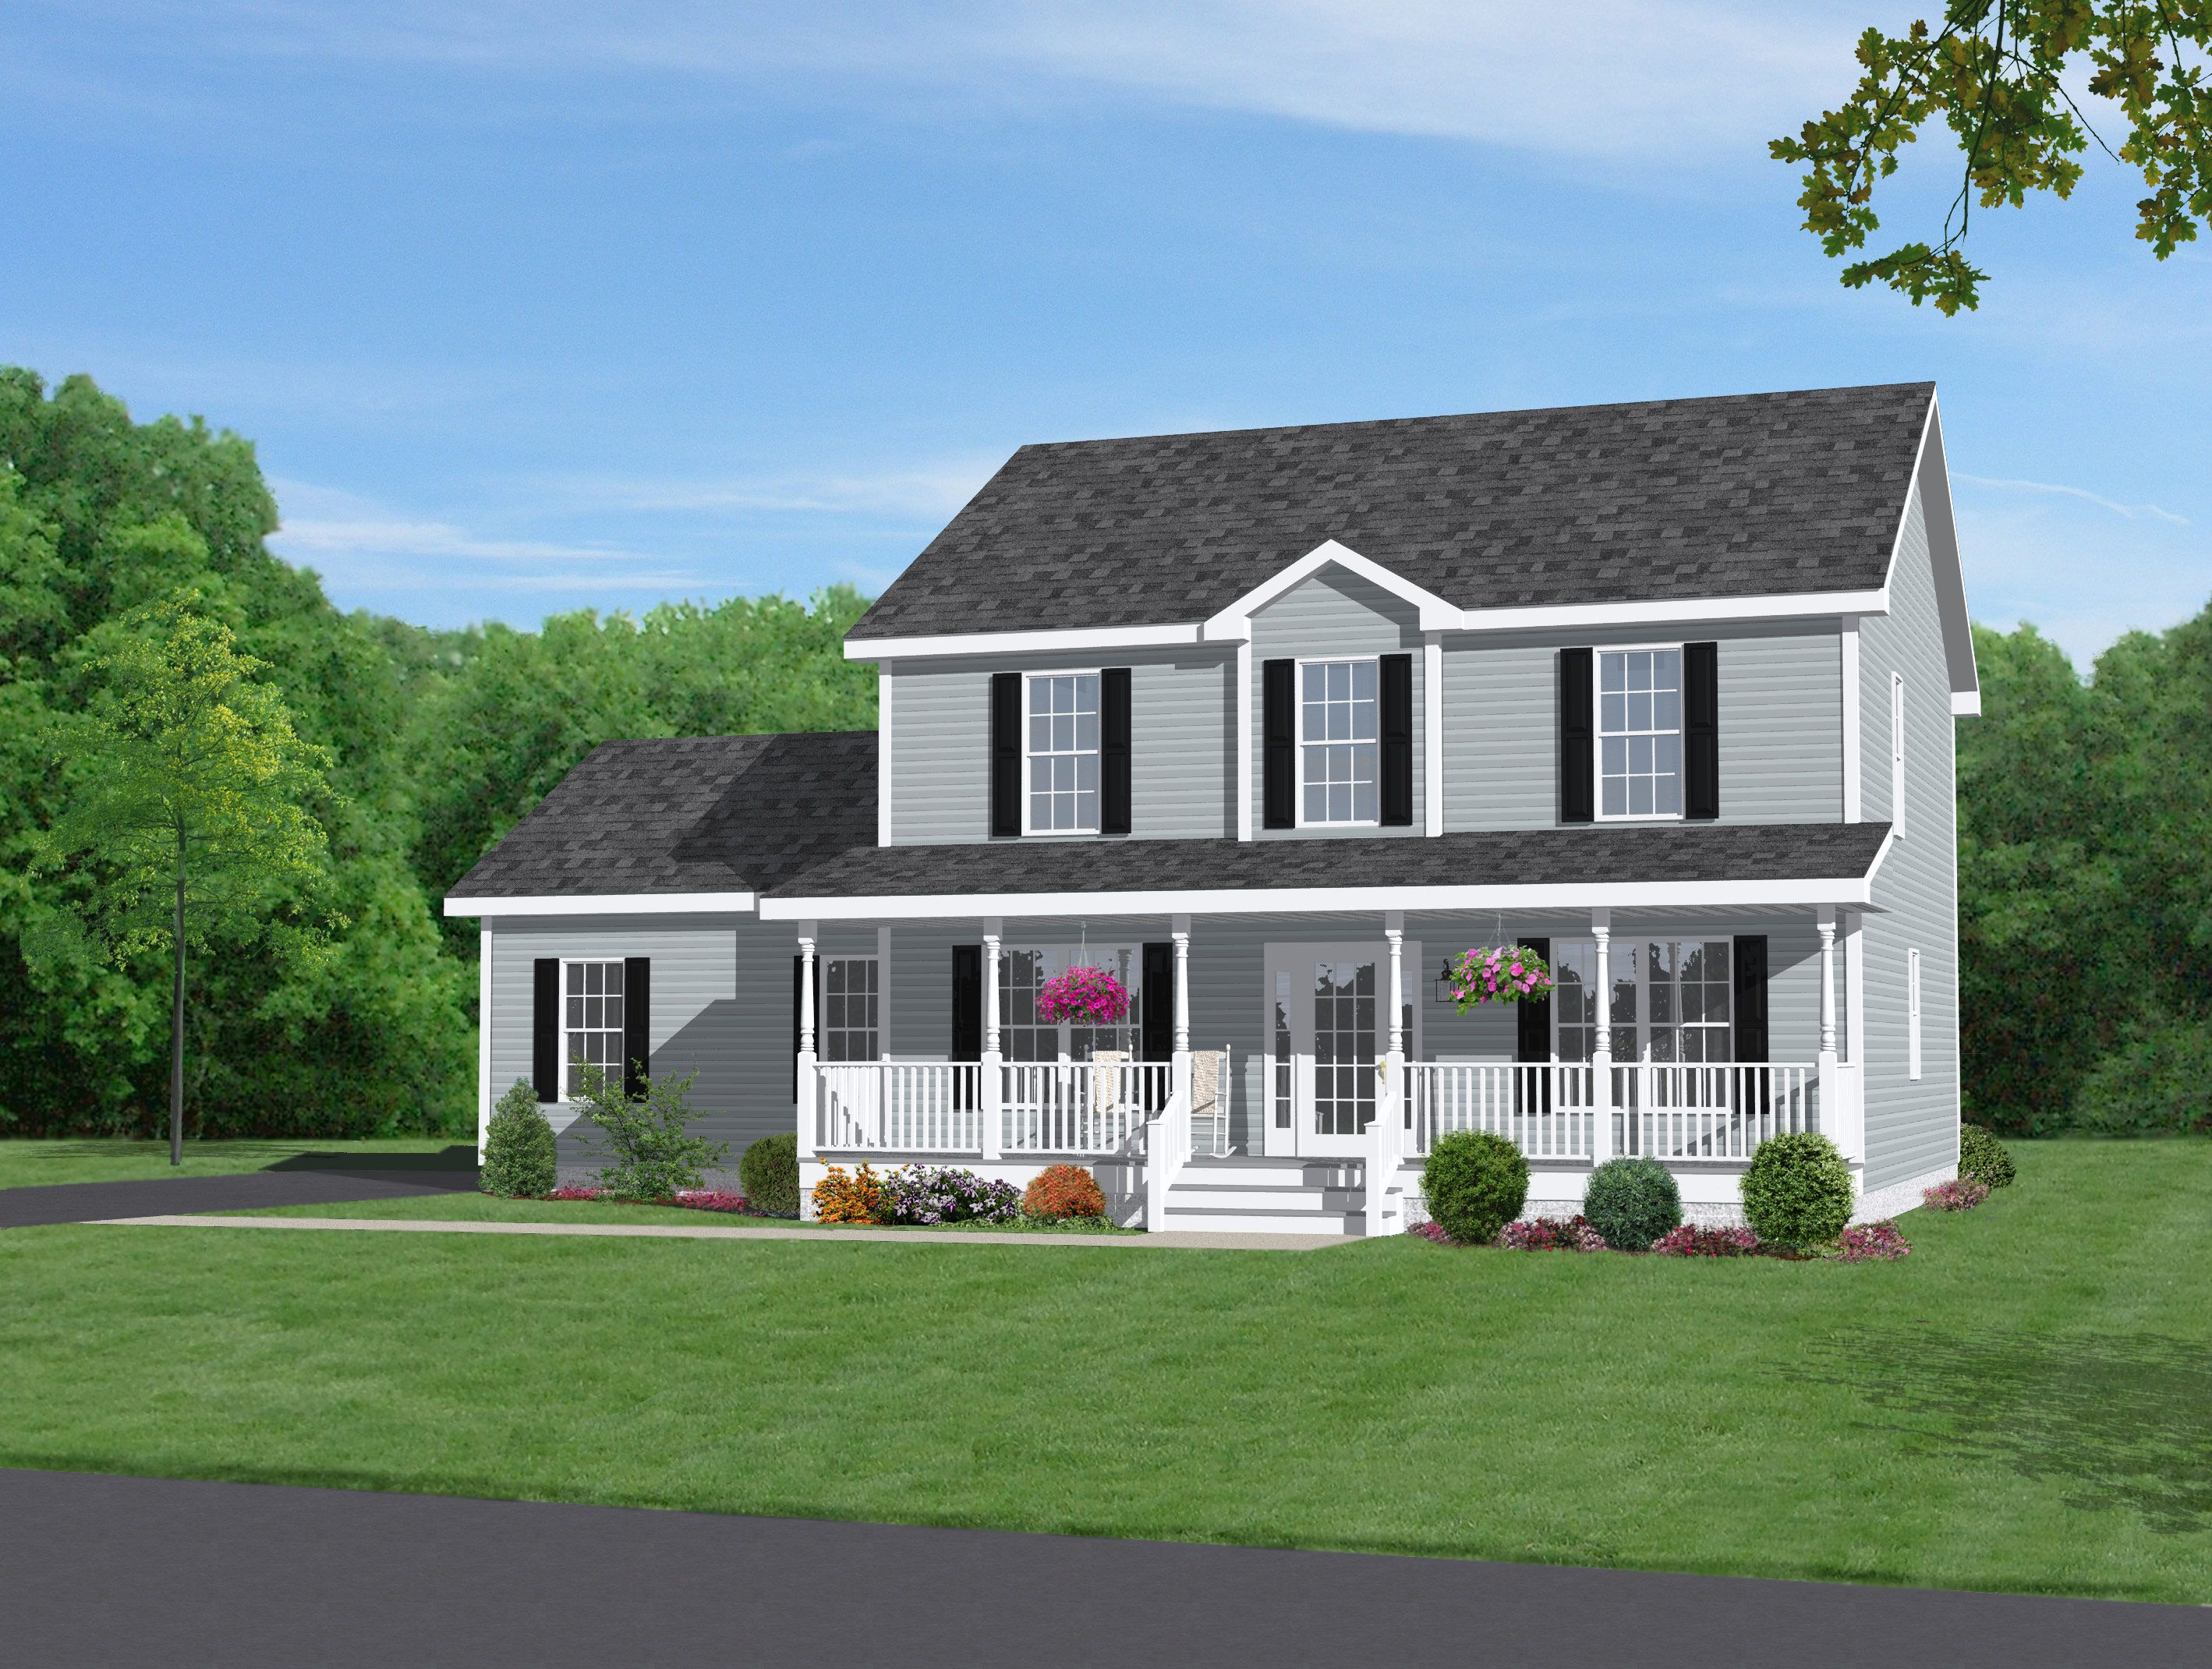 Two story home with beautiful front porch dream home for Two story home designs